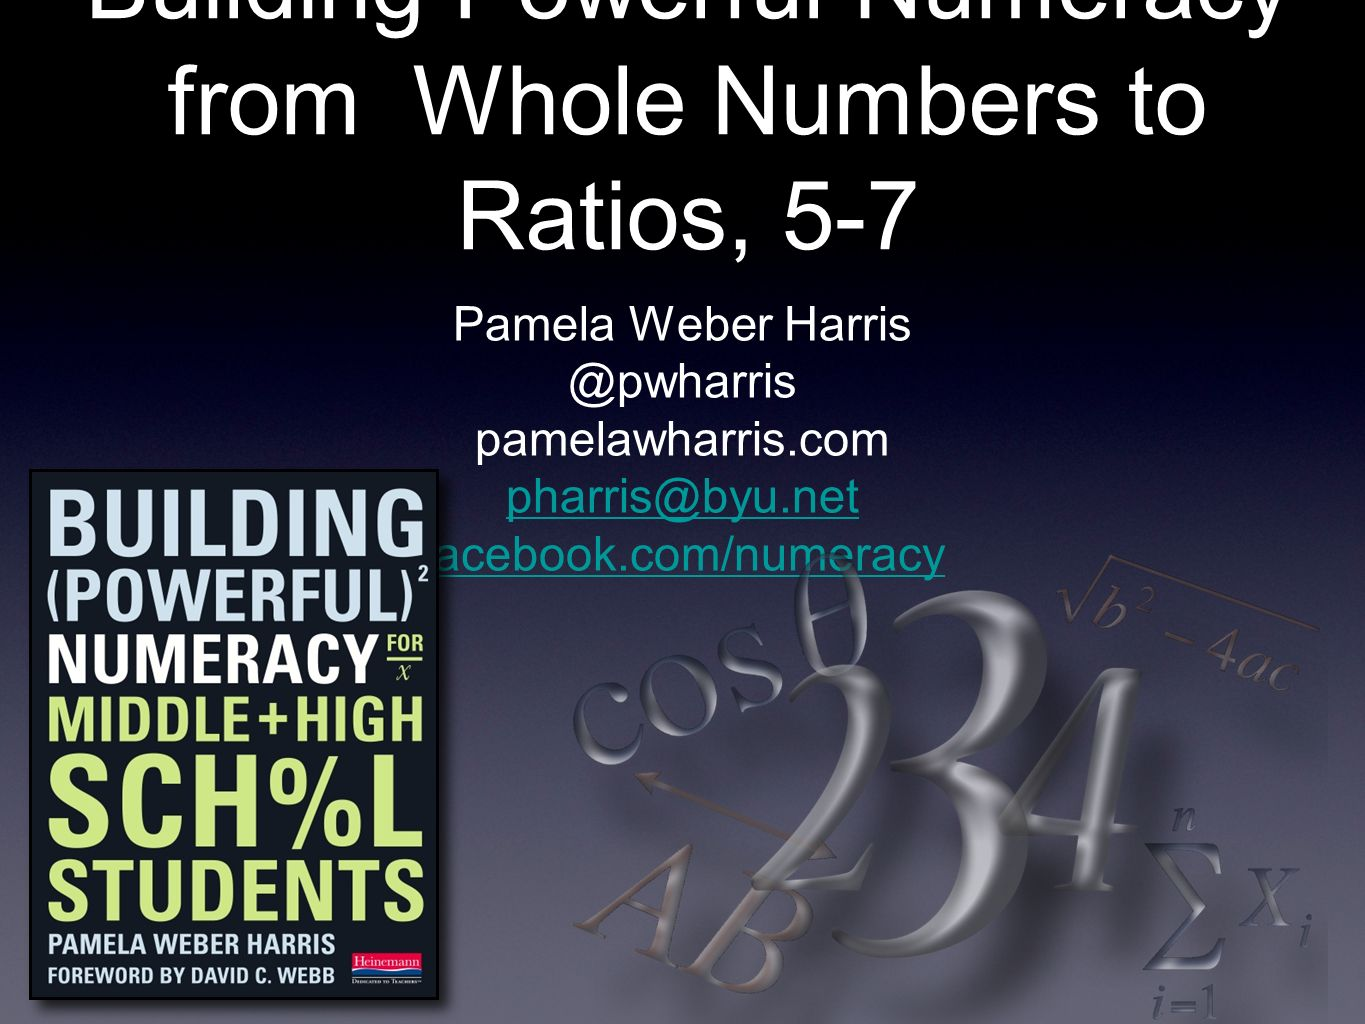 Building Powerful Numeracy from Whole Numbers to Ratios, 5-7